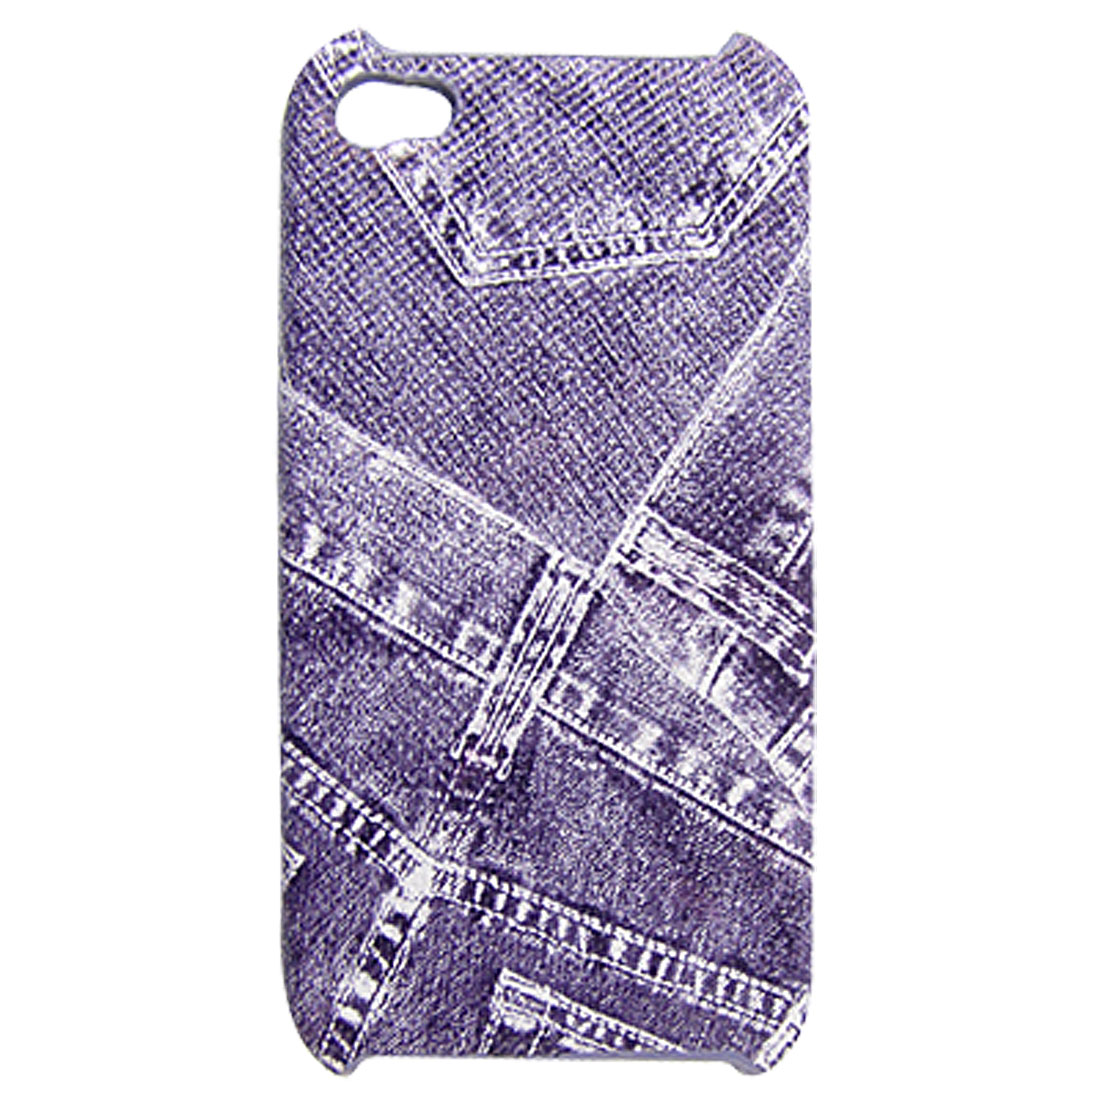 Faux Leather Plastic Purple Back Cover for iPhone 4 4G